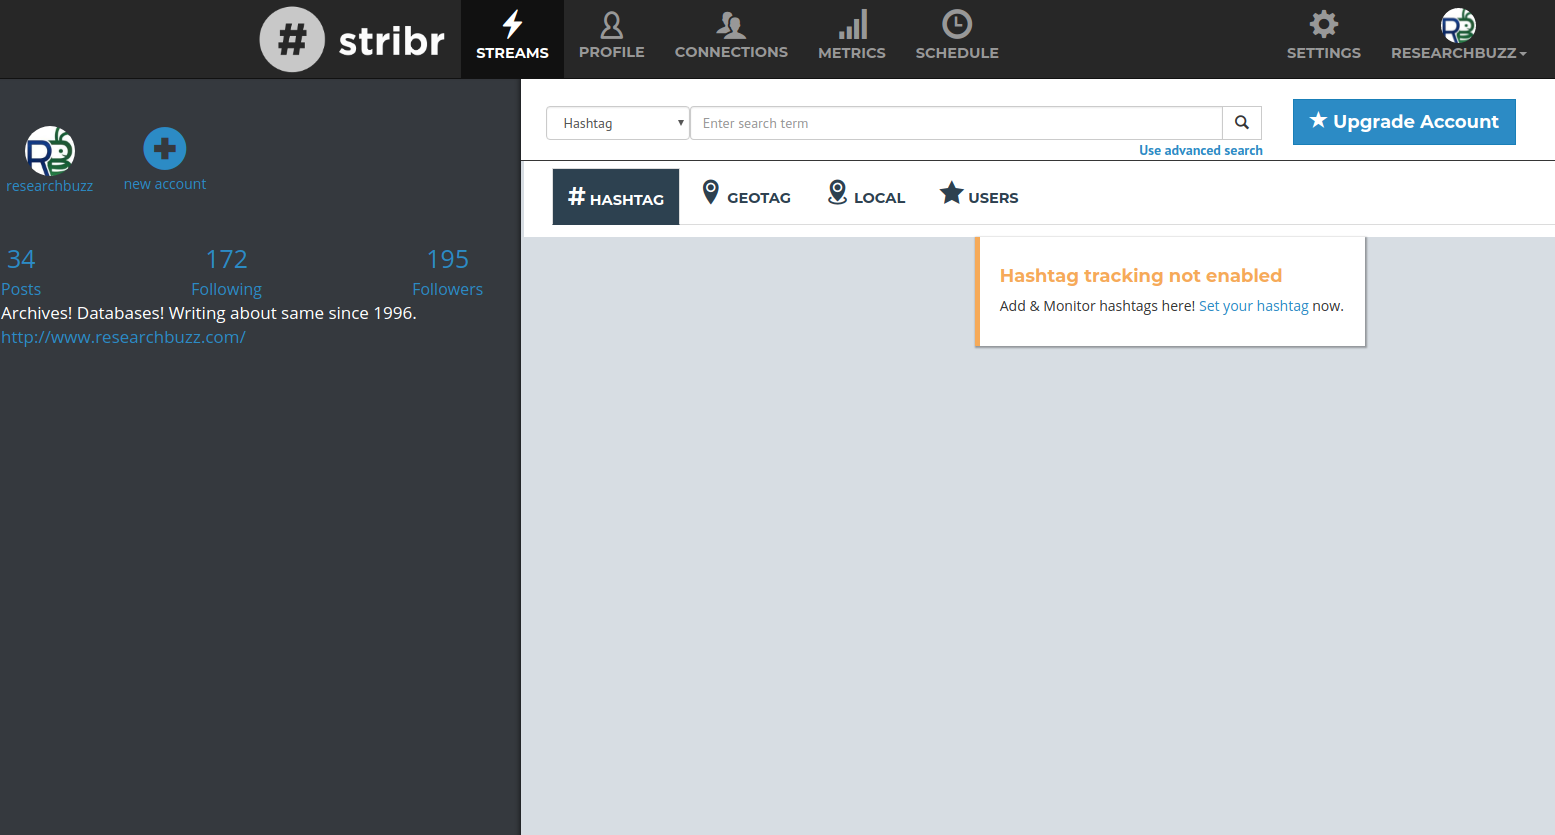 Stribrs dashboard for hashtag tracking.